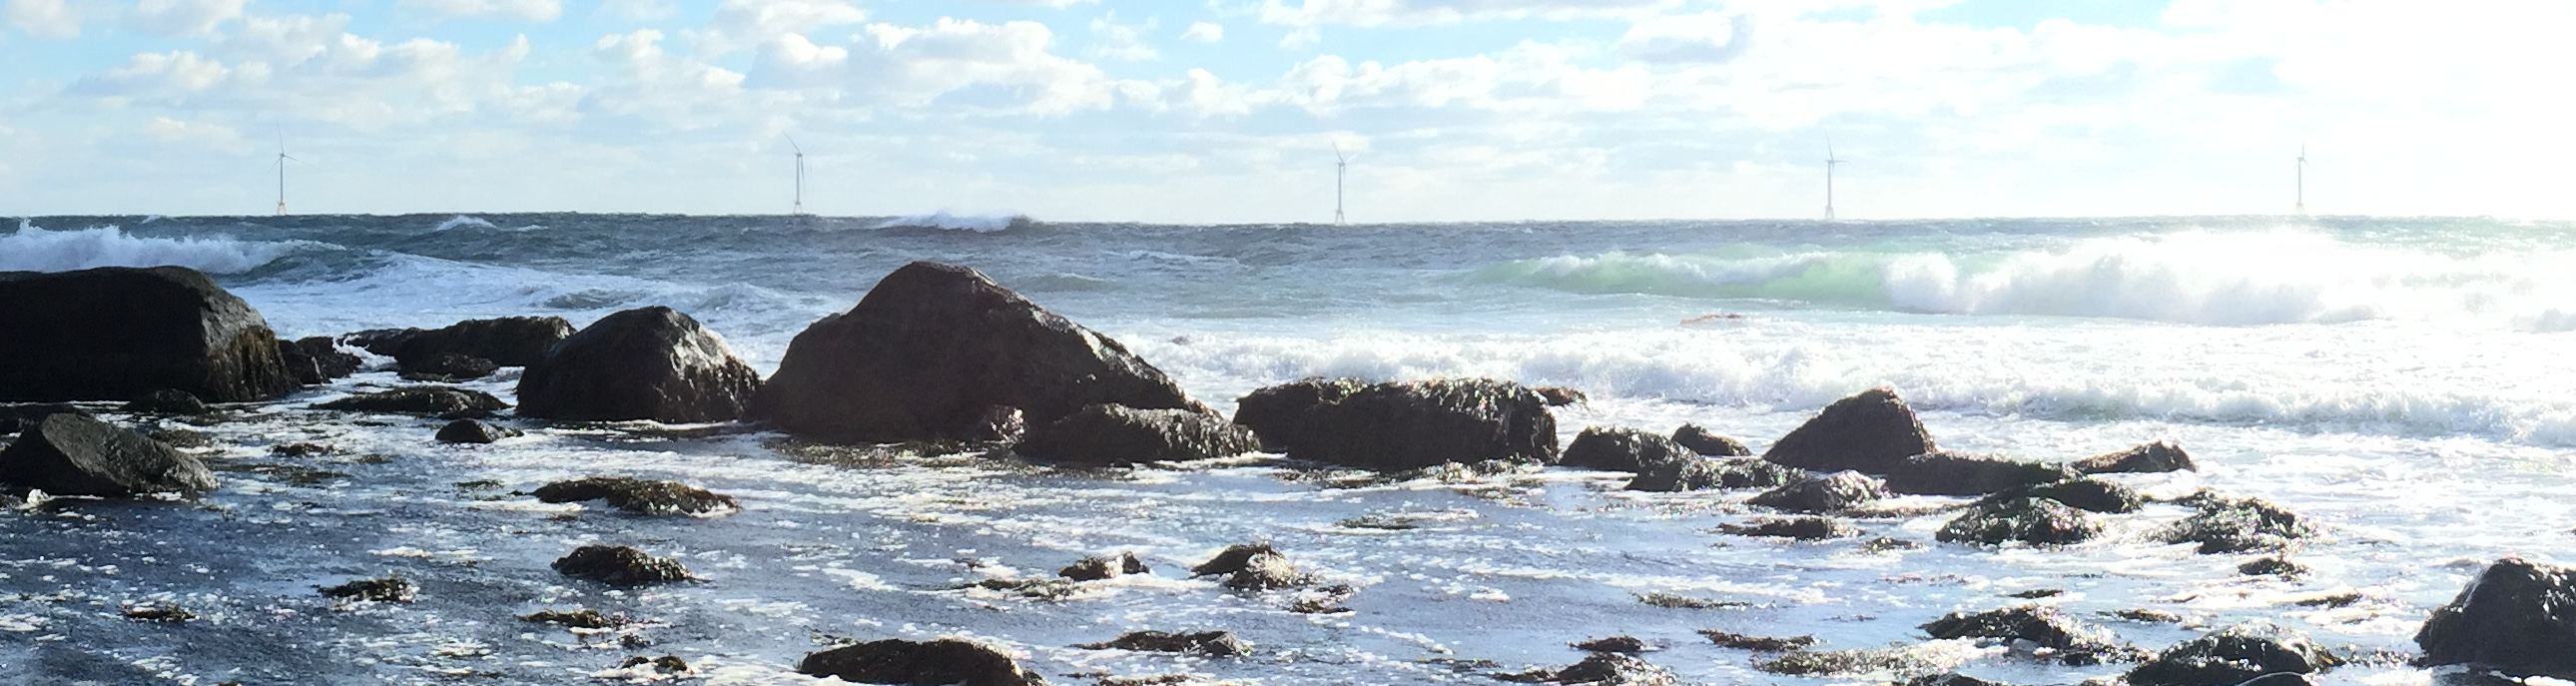 Photo near Mohegan Bluffs, Wind farm before Block Island, Photo: Oliver Knill, December, 2016